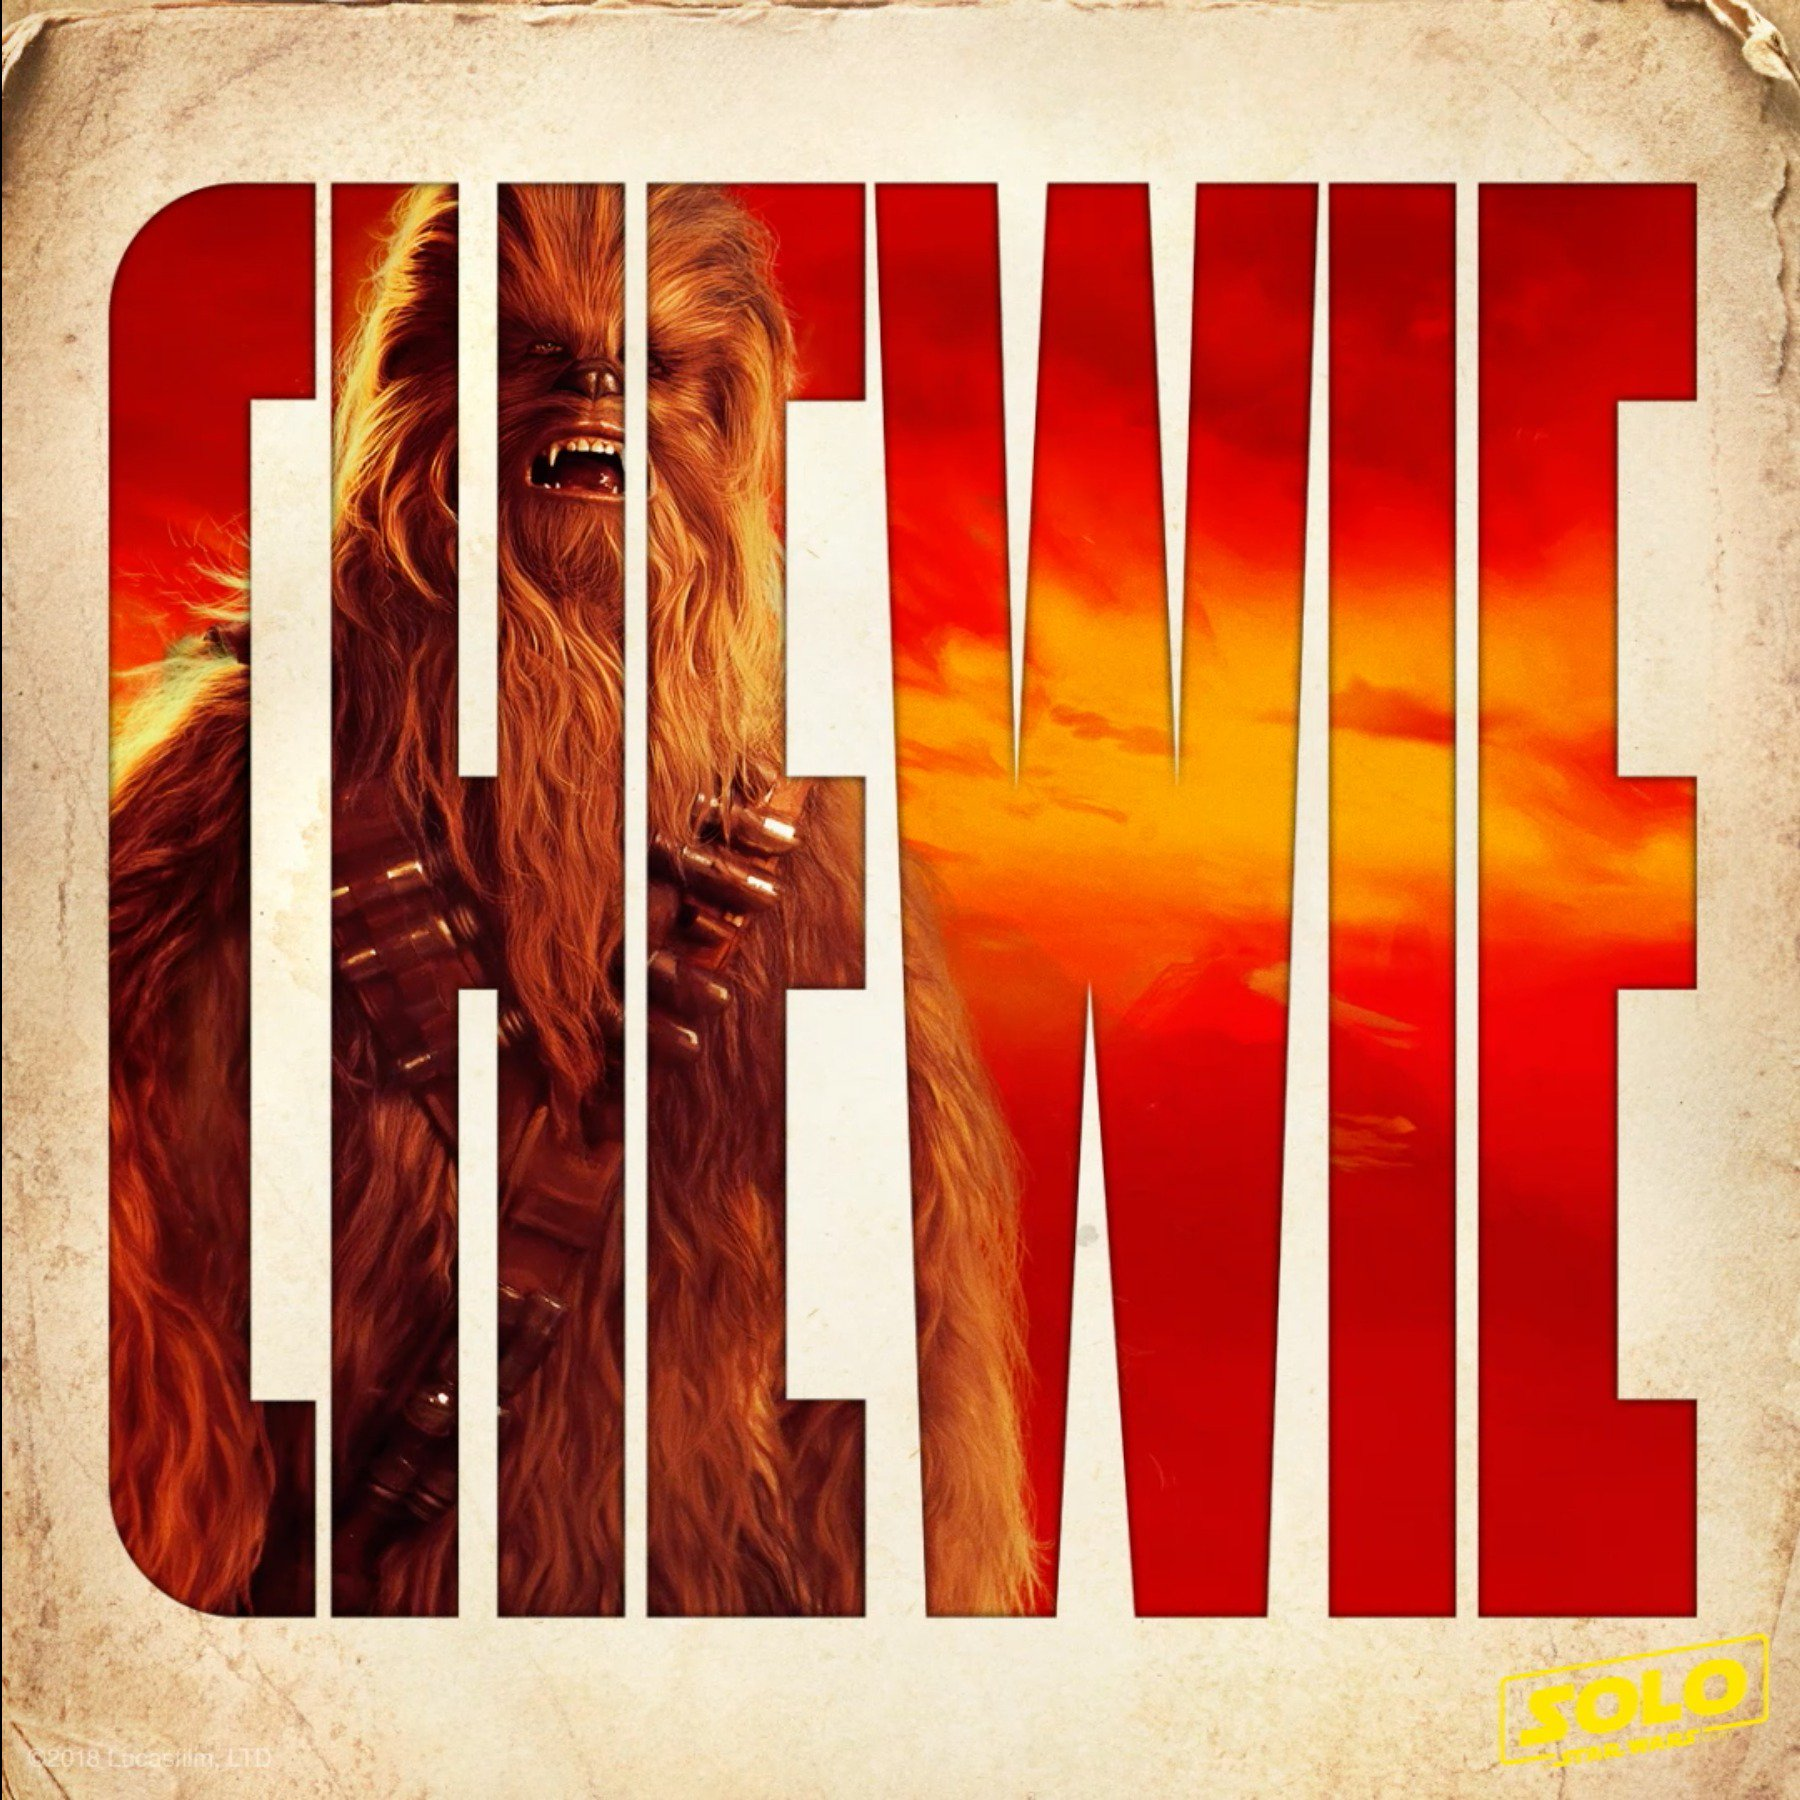 Reloaded twaddle – RT @starwars: Best co-pilot in the galaxy. See #Chewbacca in Solo: A Star Wars S...